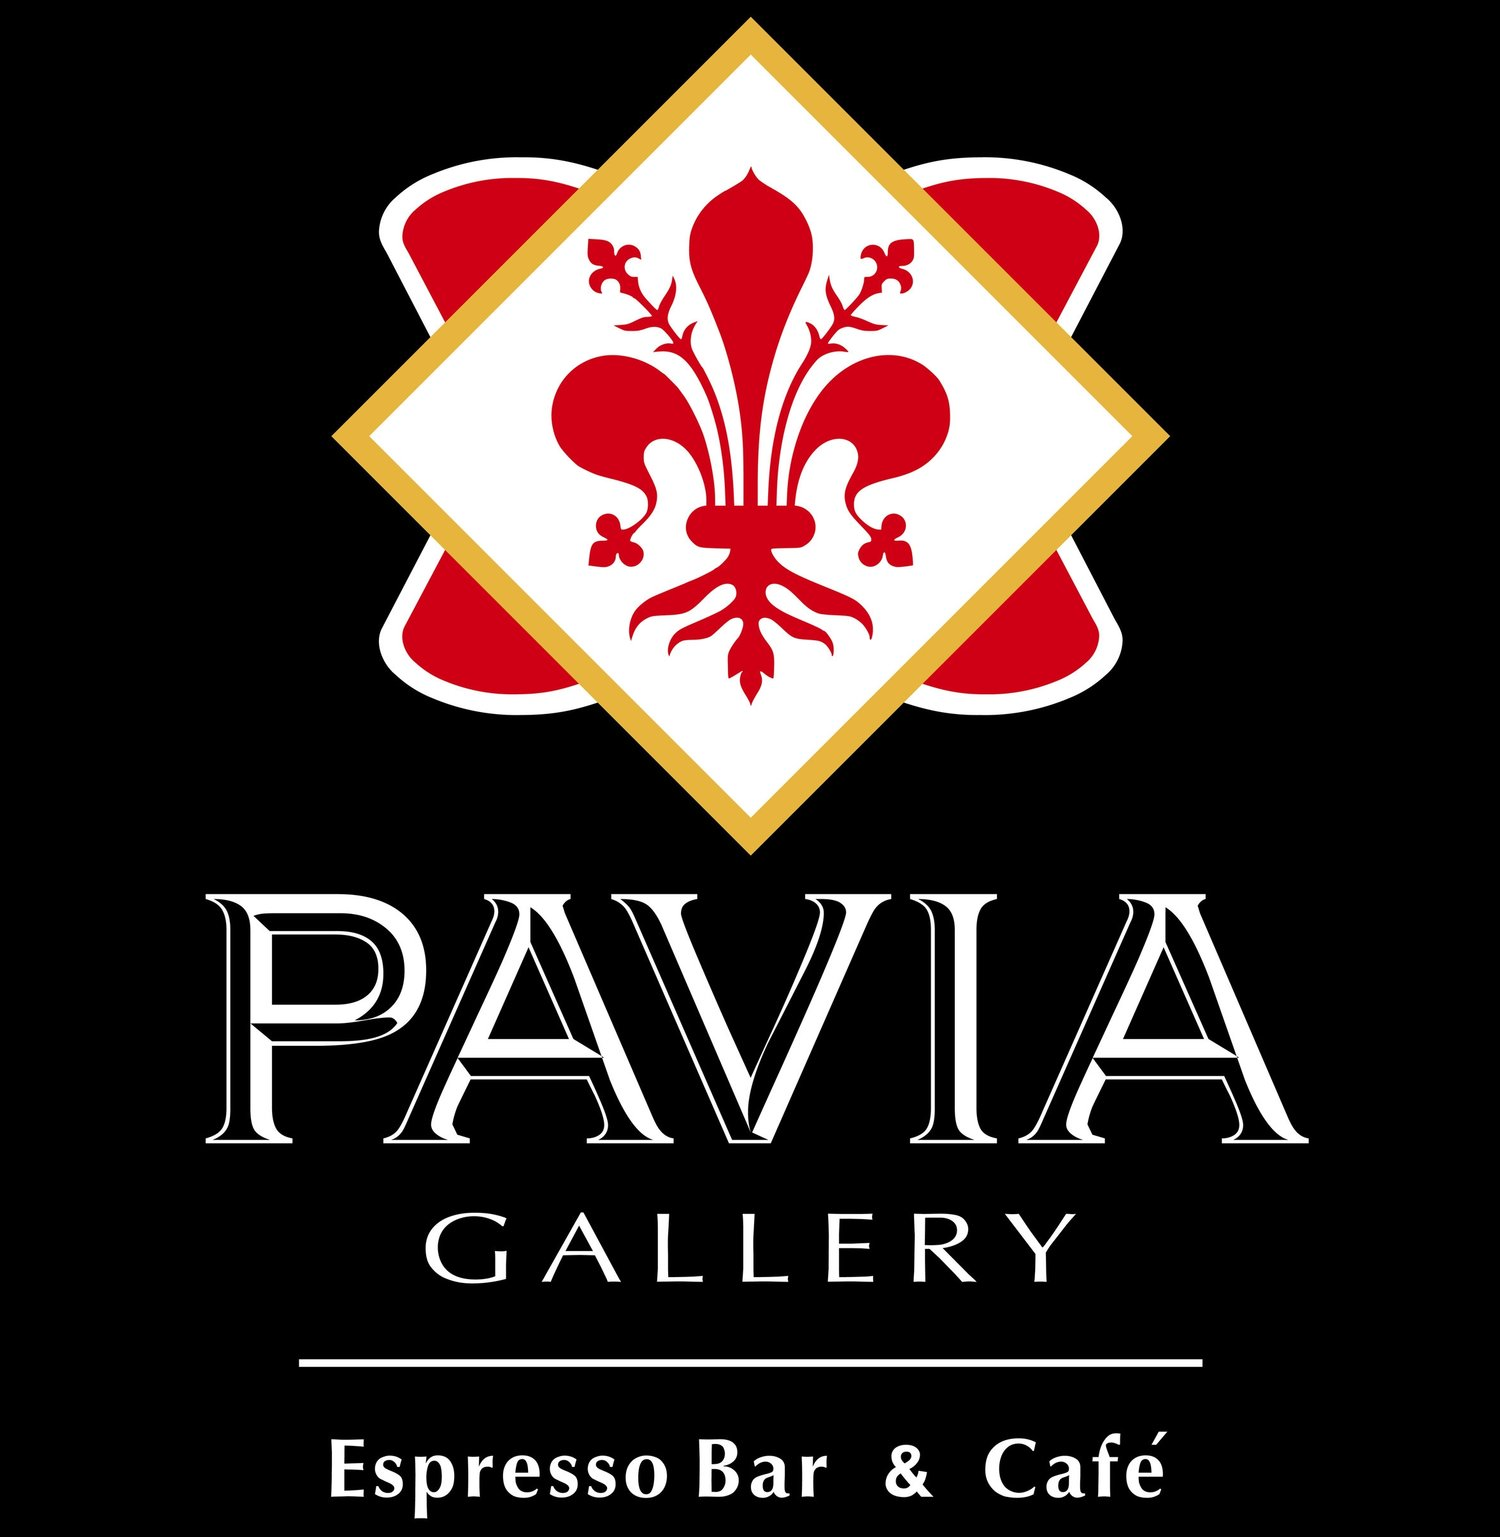 PAVIA Gallery | Fine Art, Catering, Casual Food & Imported Florentine Espresso